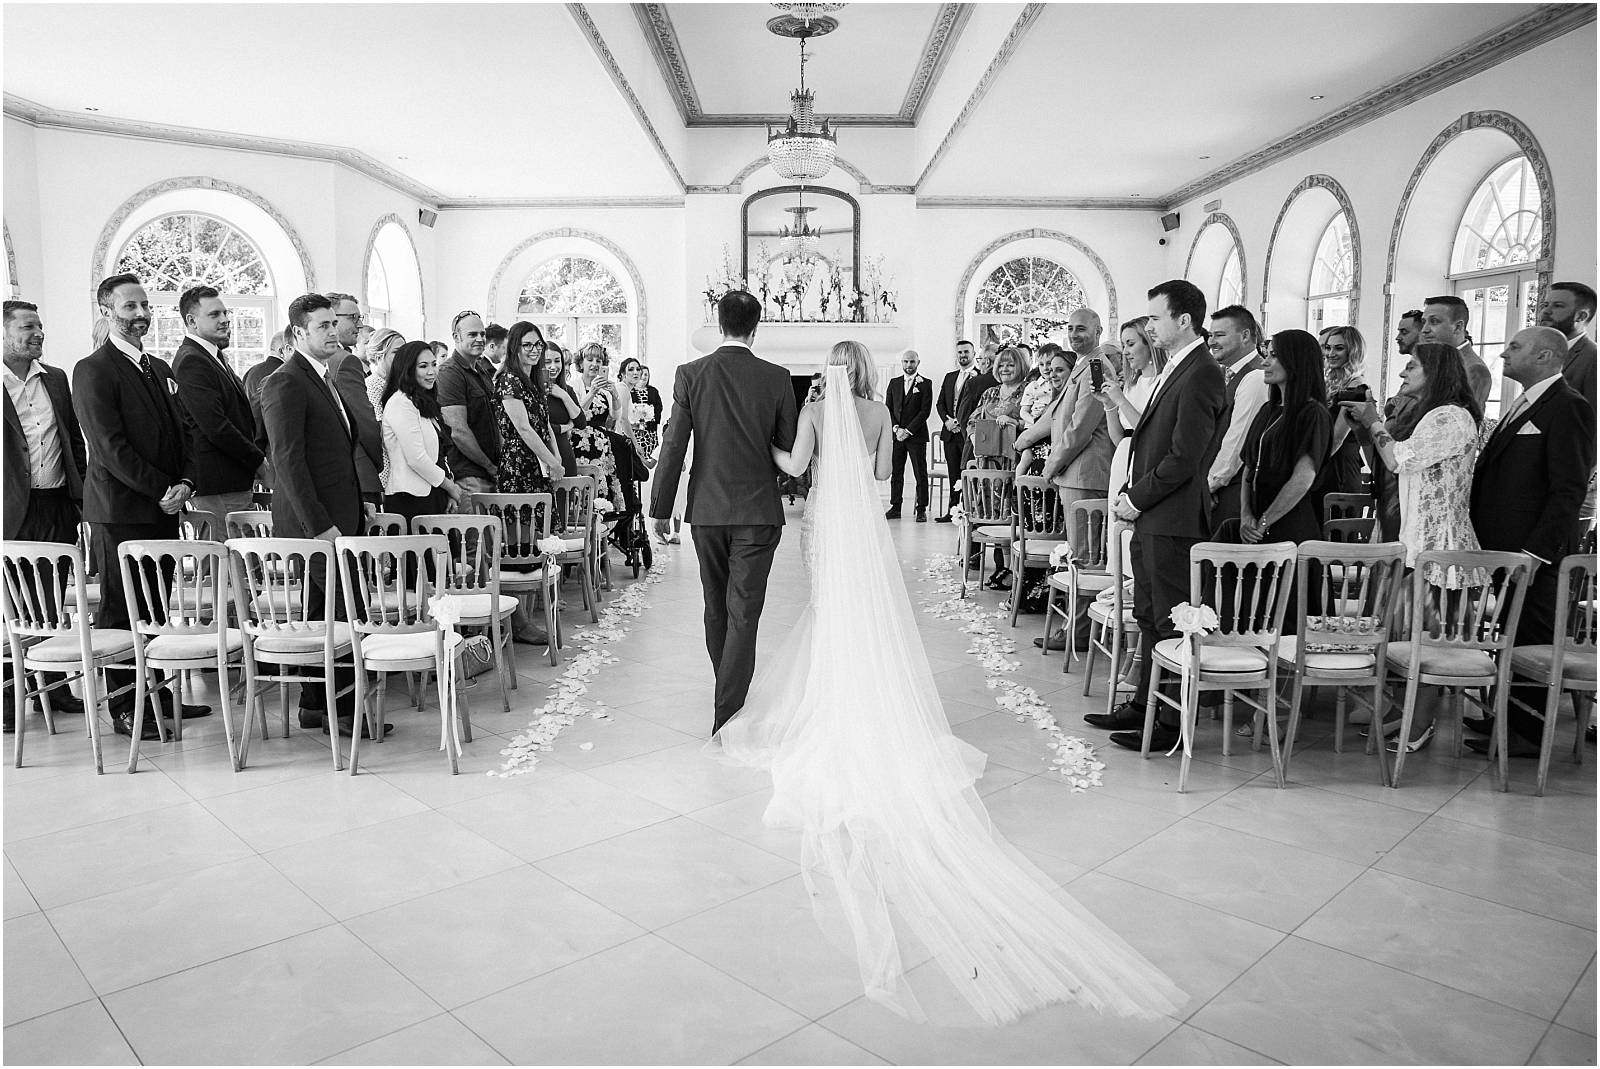 walking down the aisle in black and white from behind